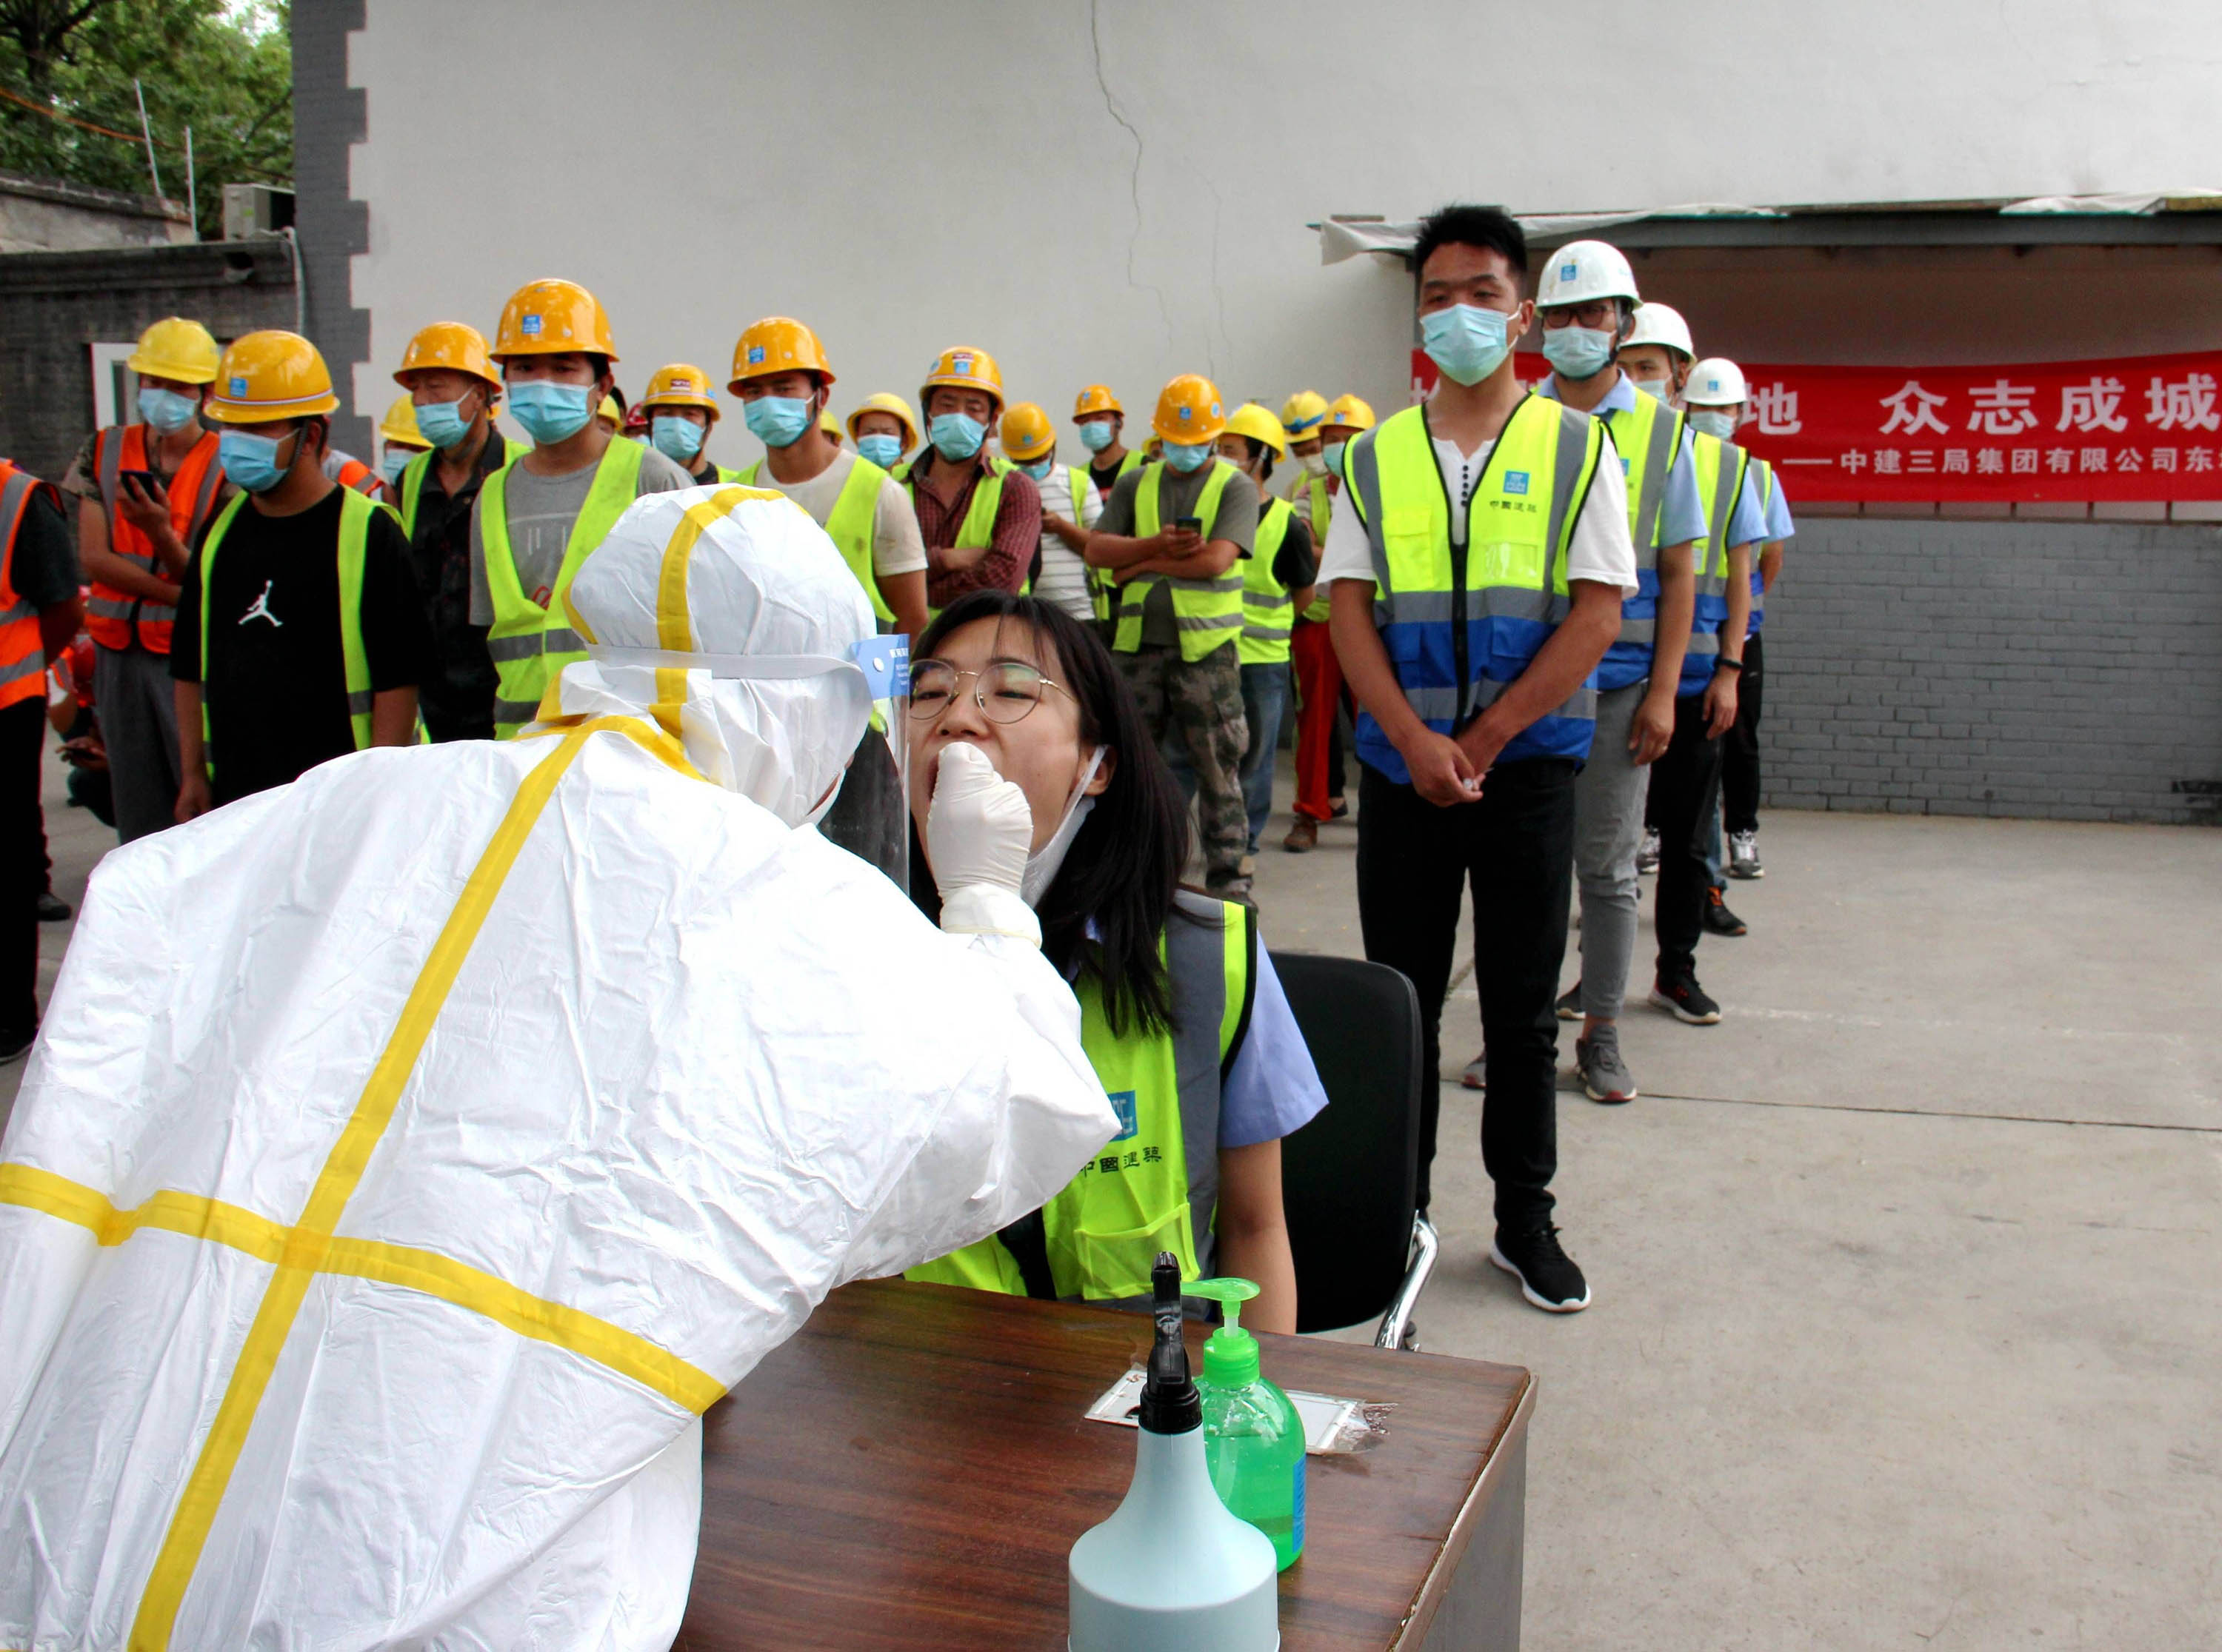 A medical worker collects throat swabs from construction workers at a construction site in Beijing on June 17.